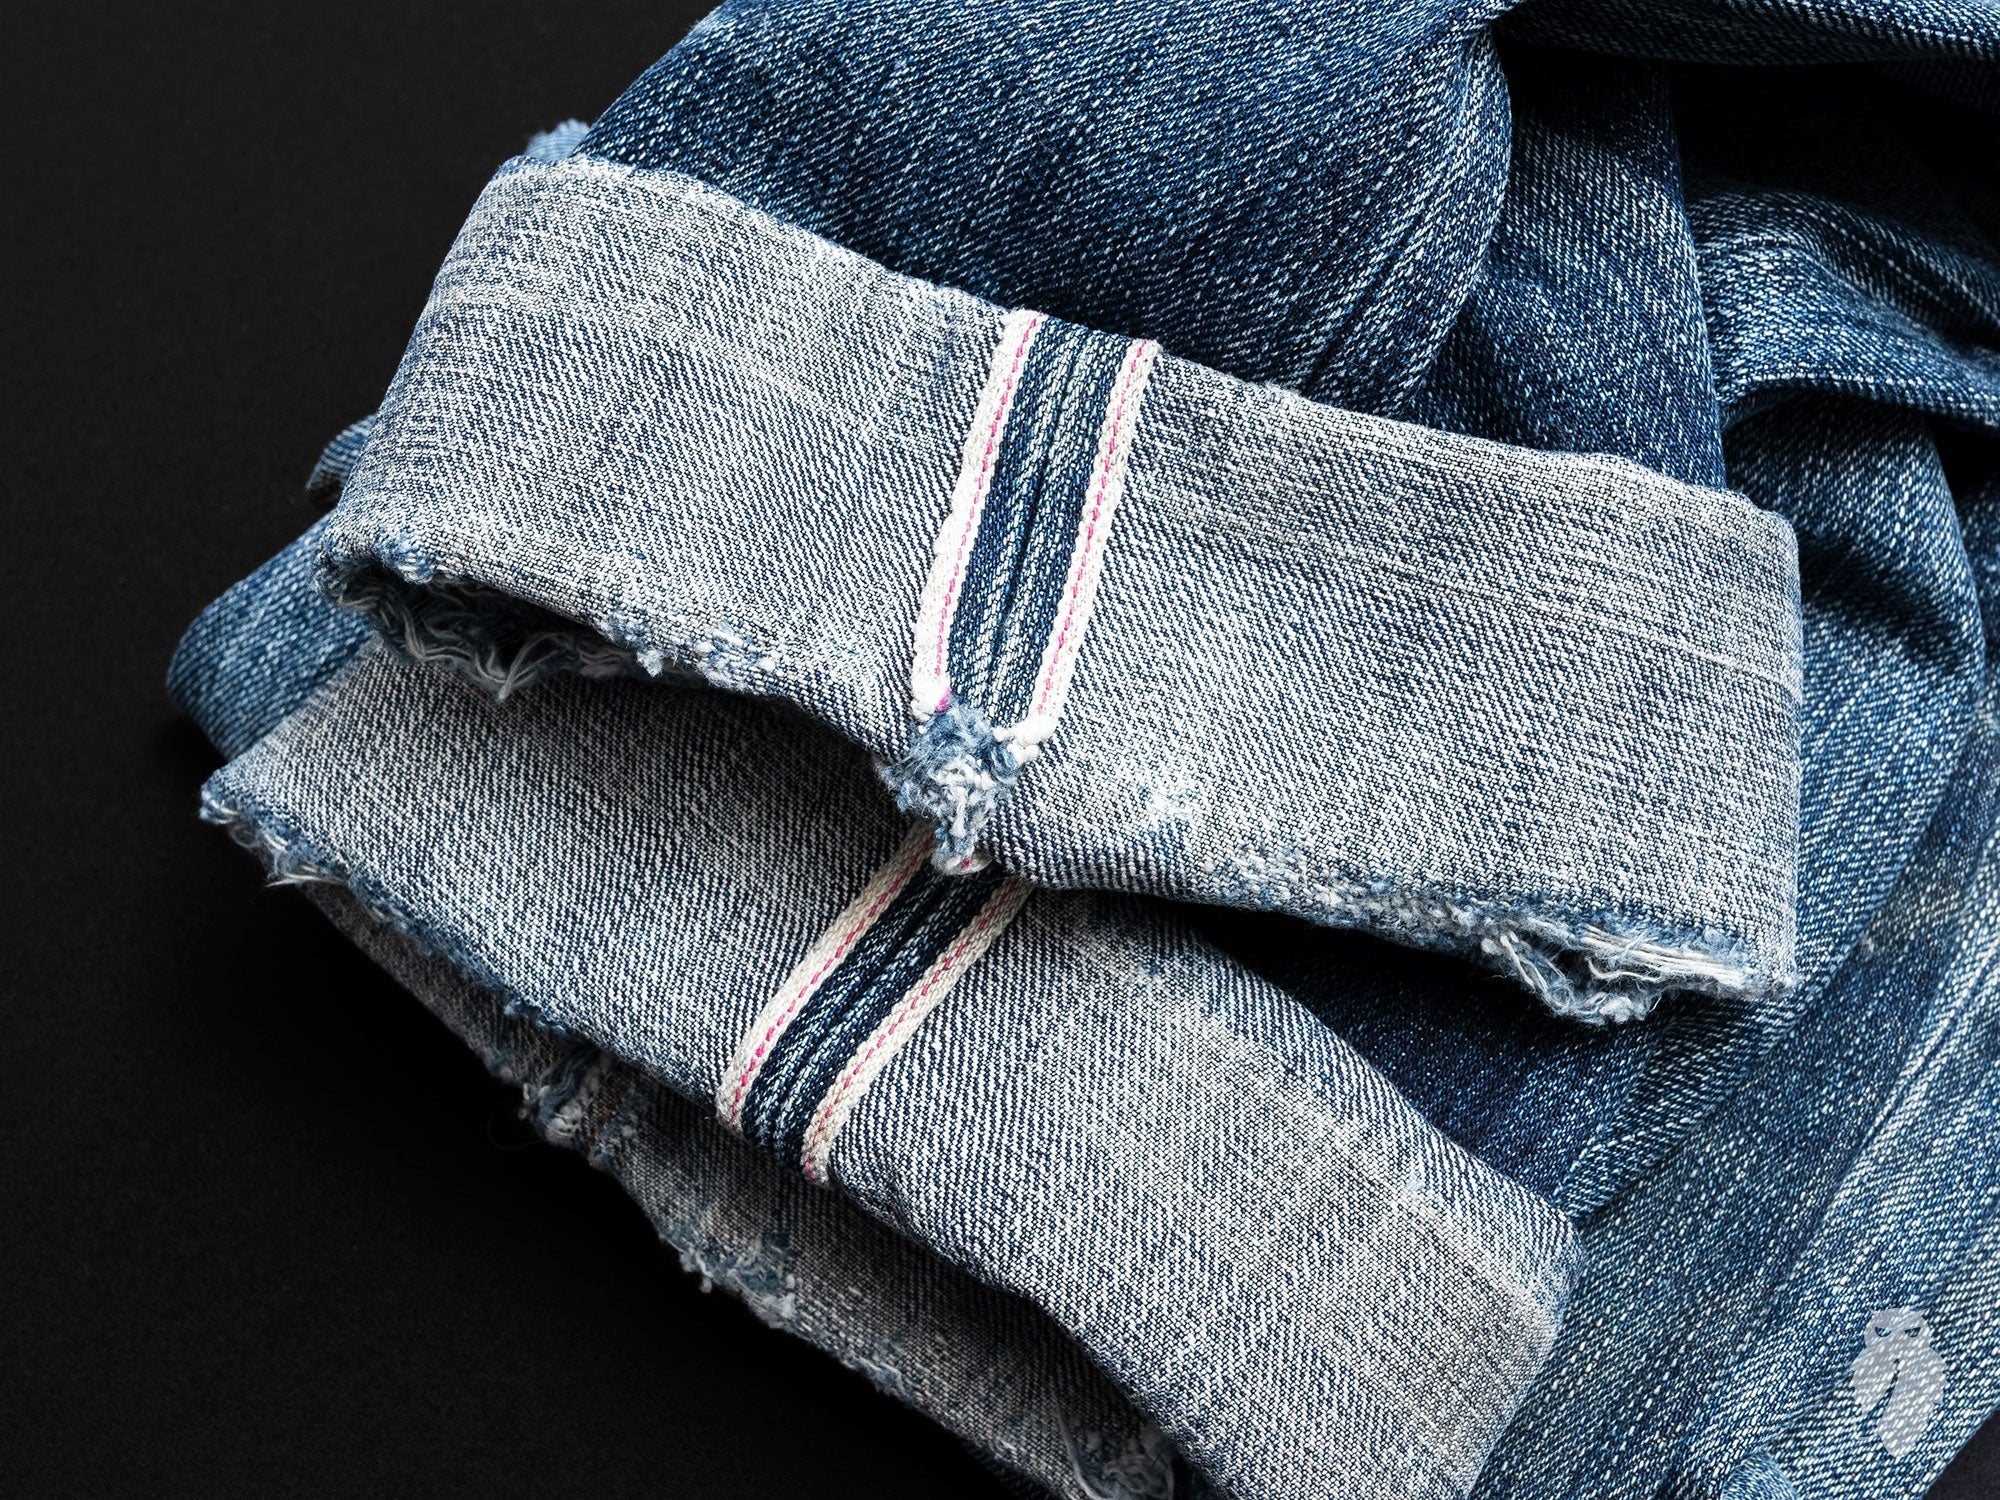 faded raw denim selvedge cuffs